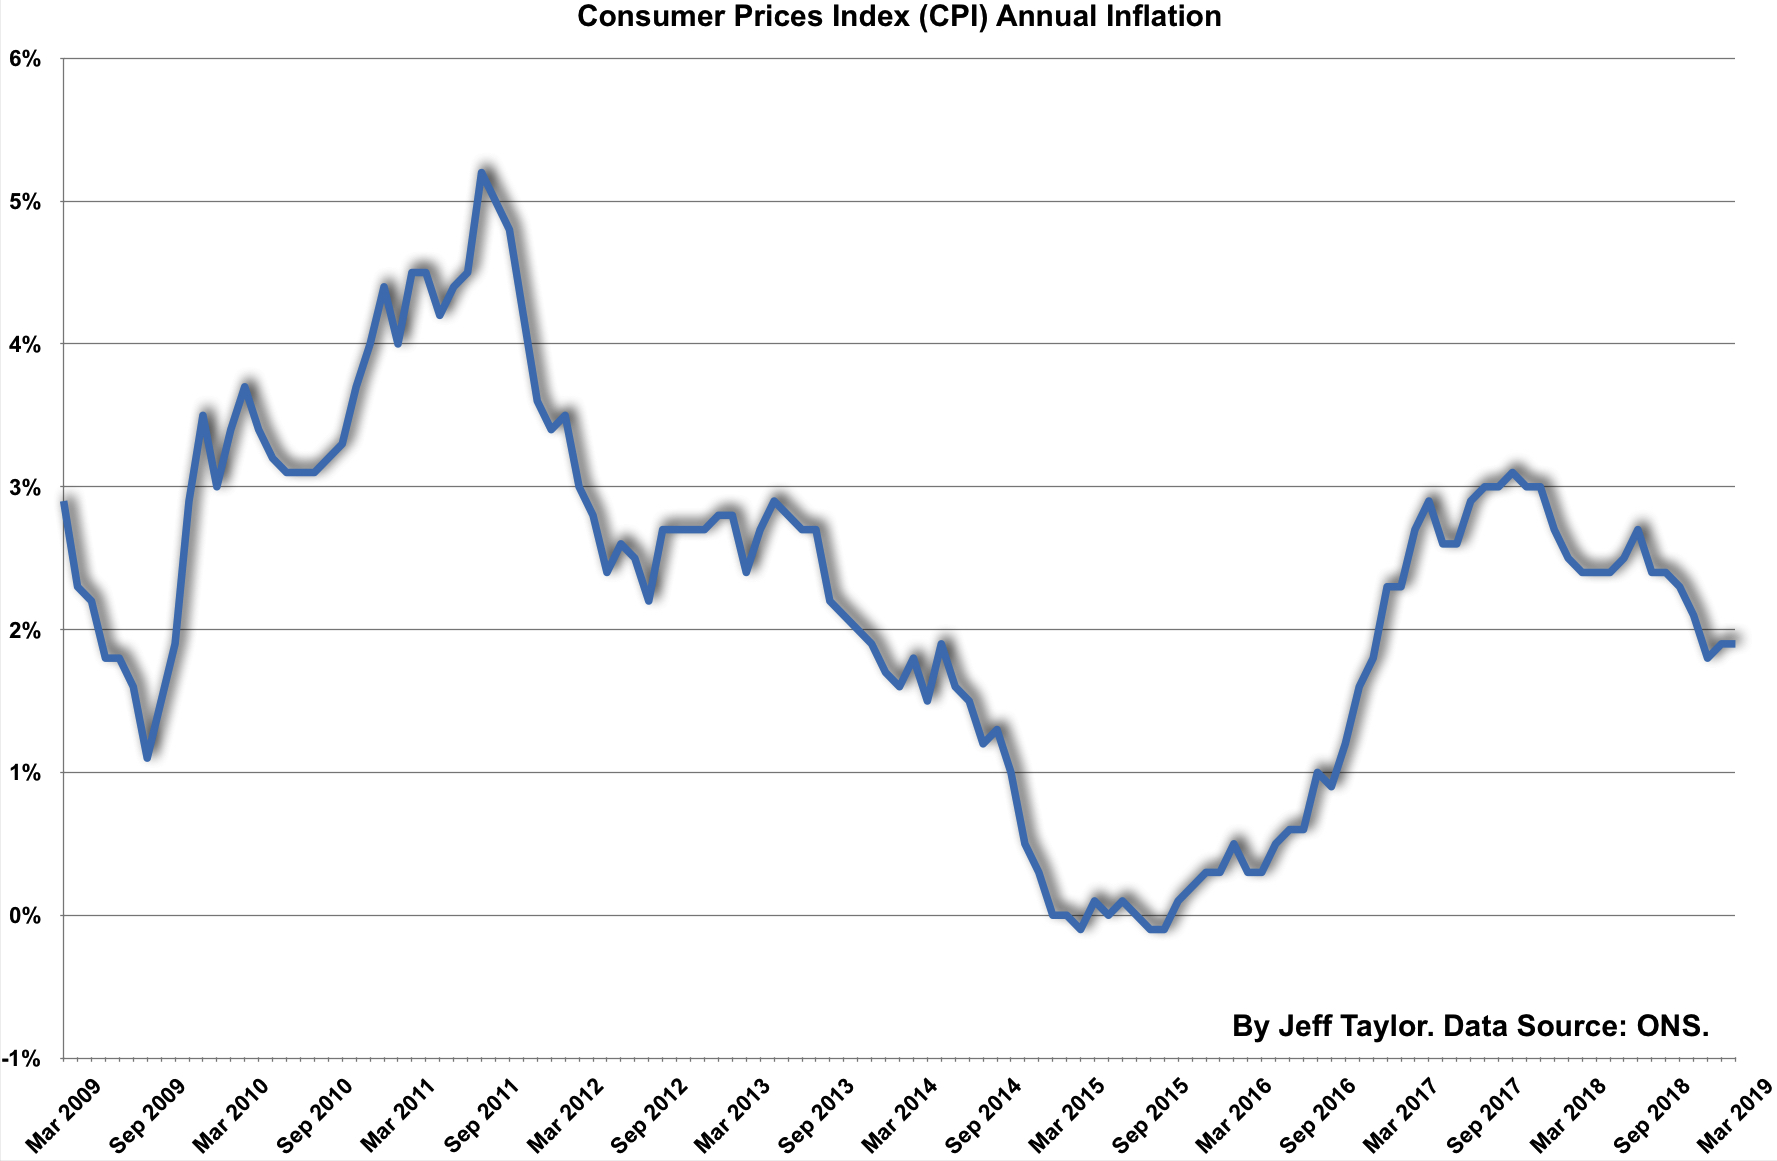 Consumer Price Index Annual inflation to March 2019